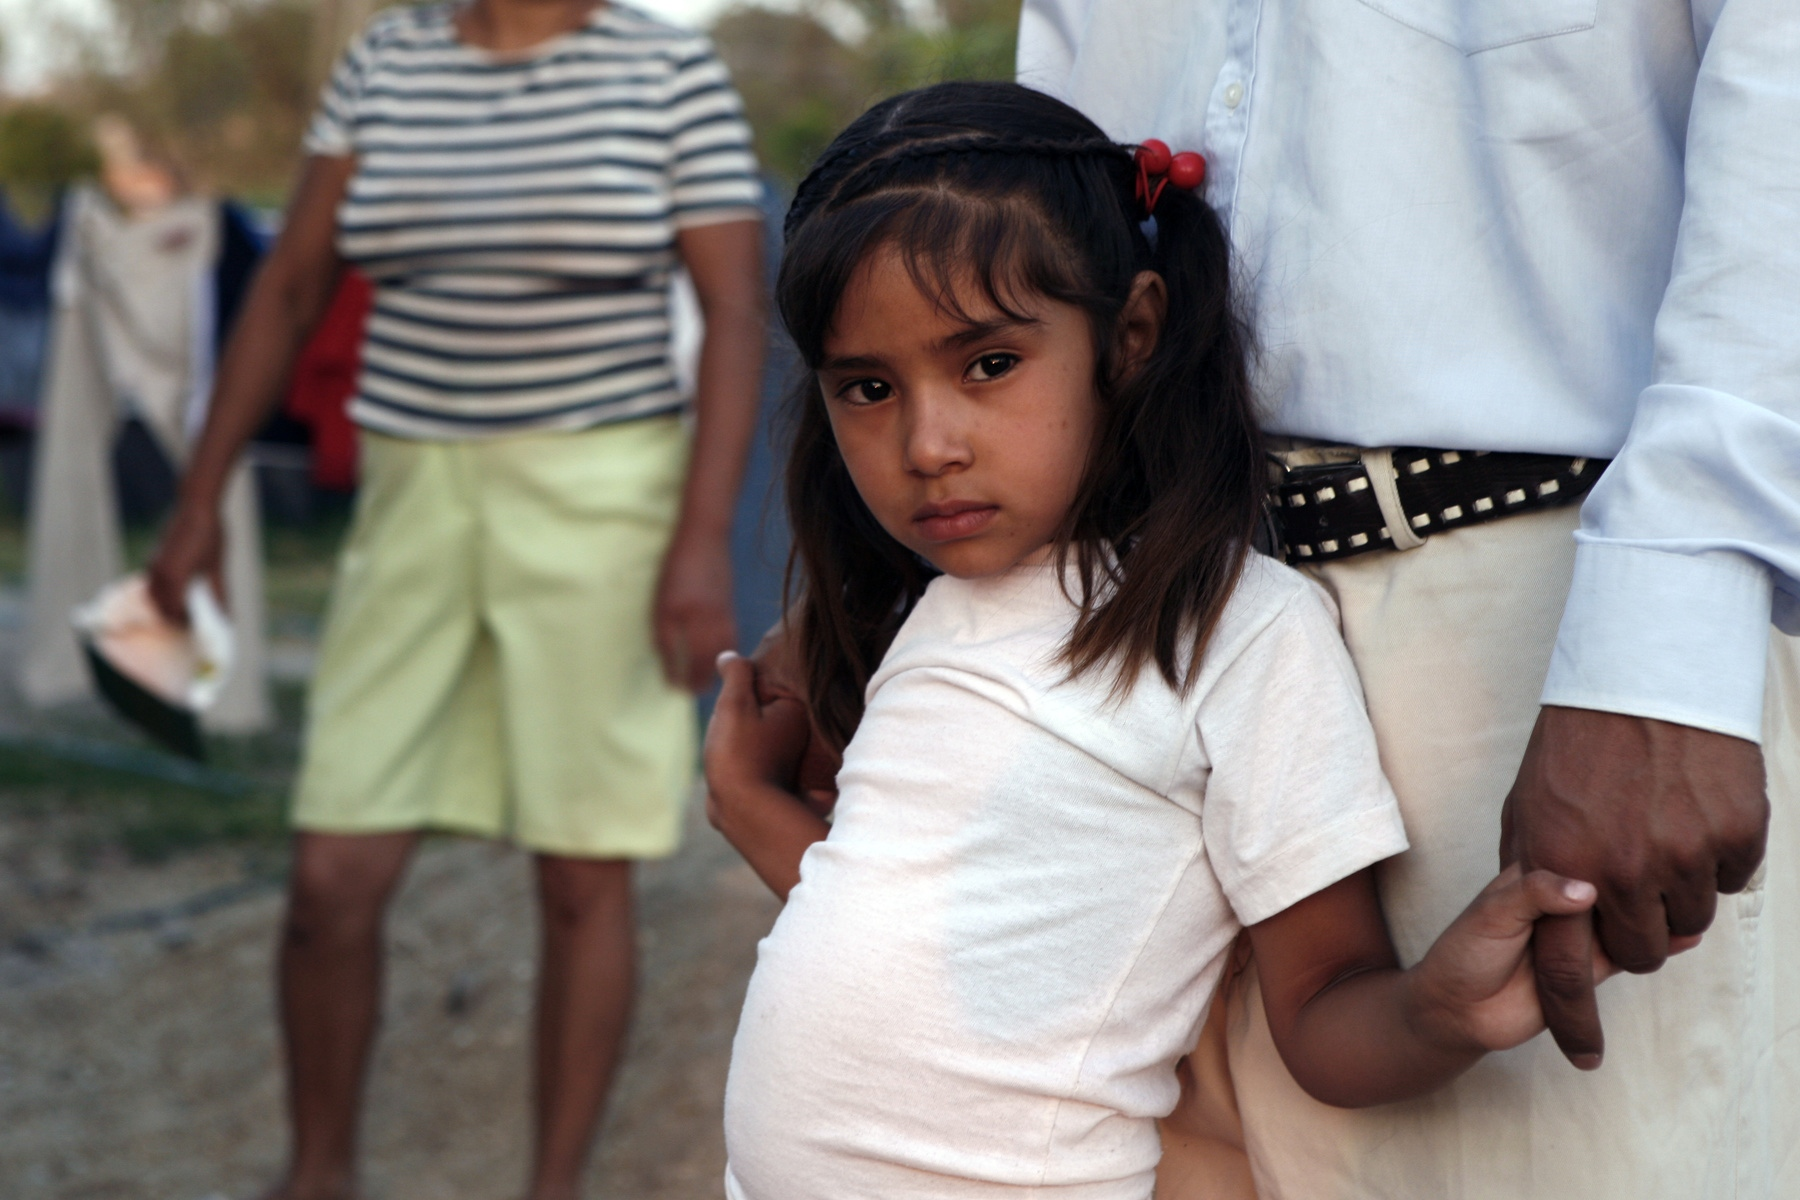 The daughter of a local family has contracted tuberculosis. Although the exceptionally high disease rate in these communities is well-known, doctors at the local state-run health clinic deny any correlation between the neighborhood's water quality and its elevated disease rate. More expensive local private practitioners, out of reach for most local residents, acknowledge the contaminated water's health risks.